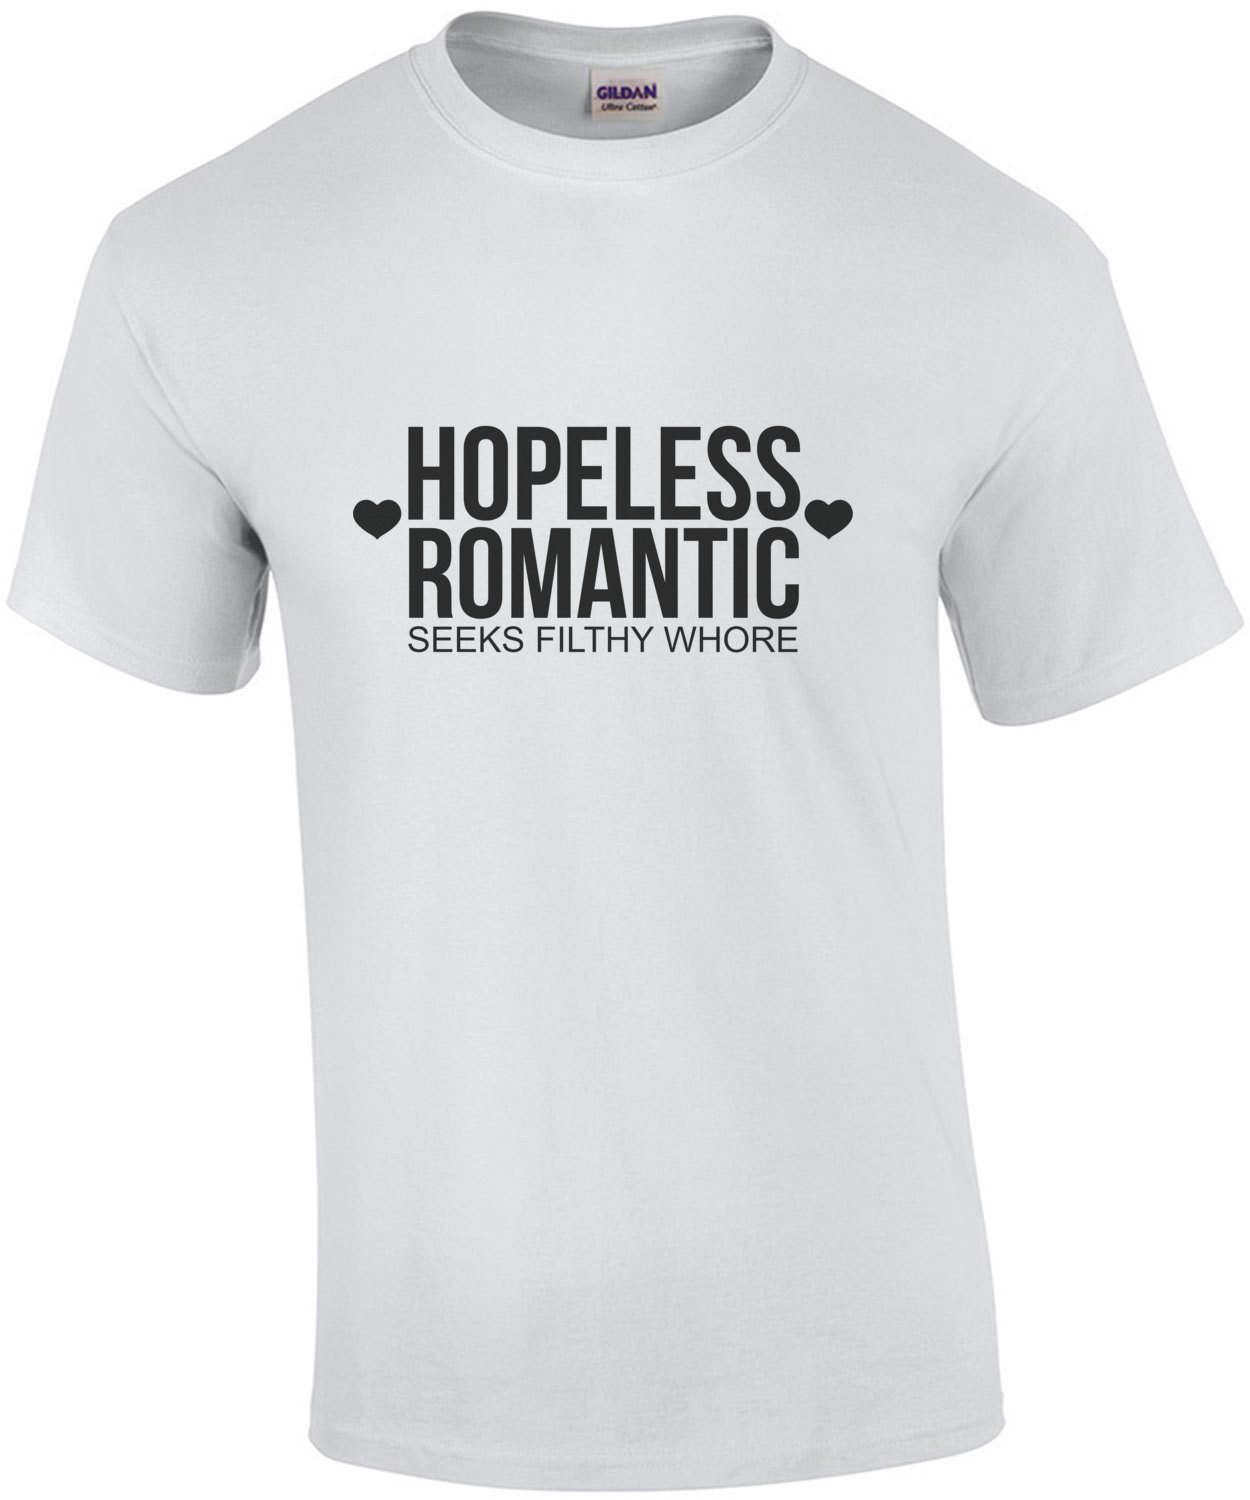 Hopeless romantic - seeks filthy whore - funny sexual t-shirt